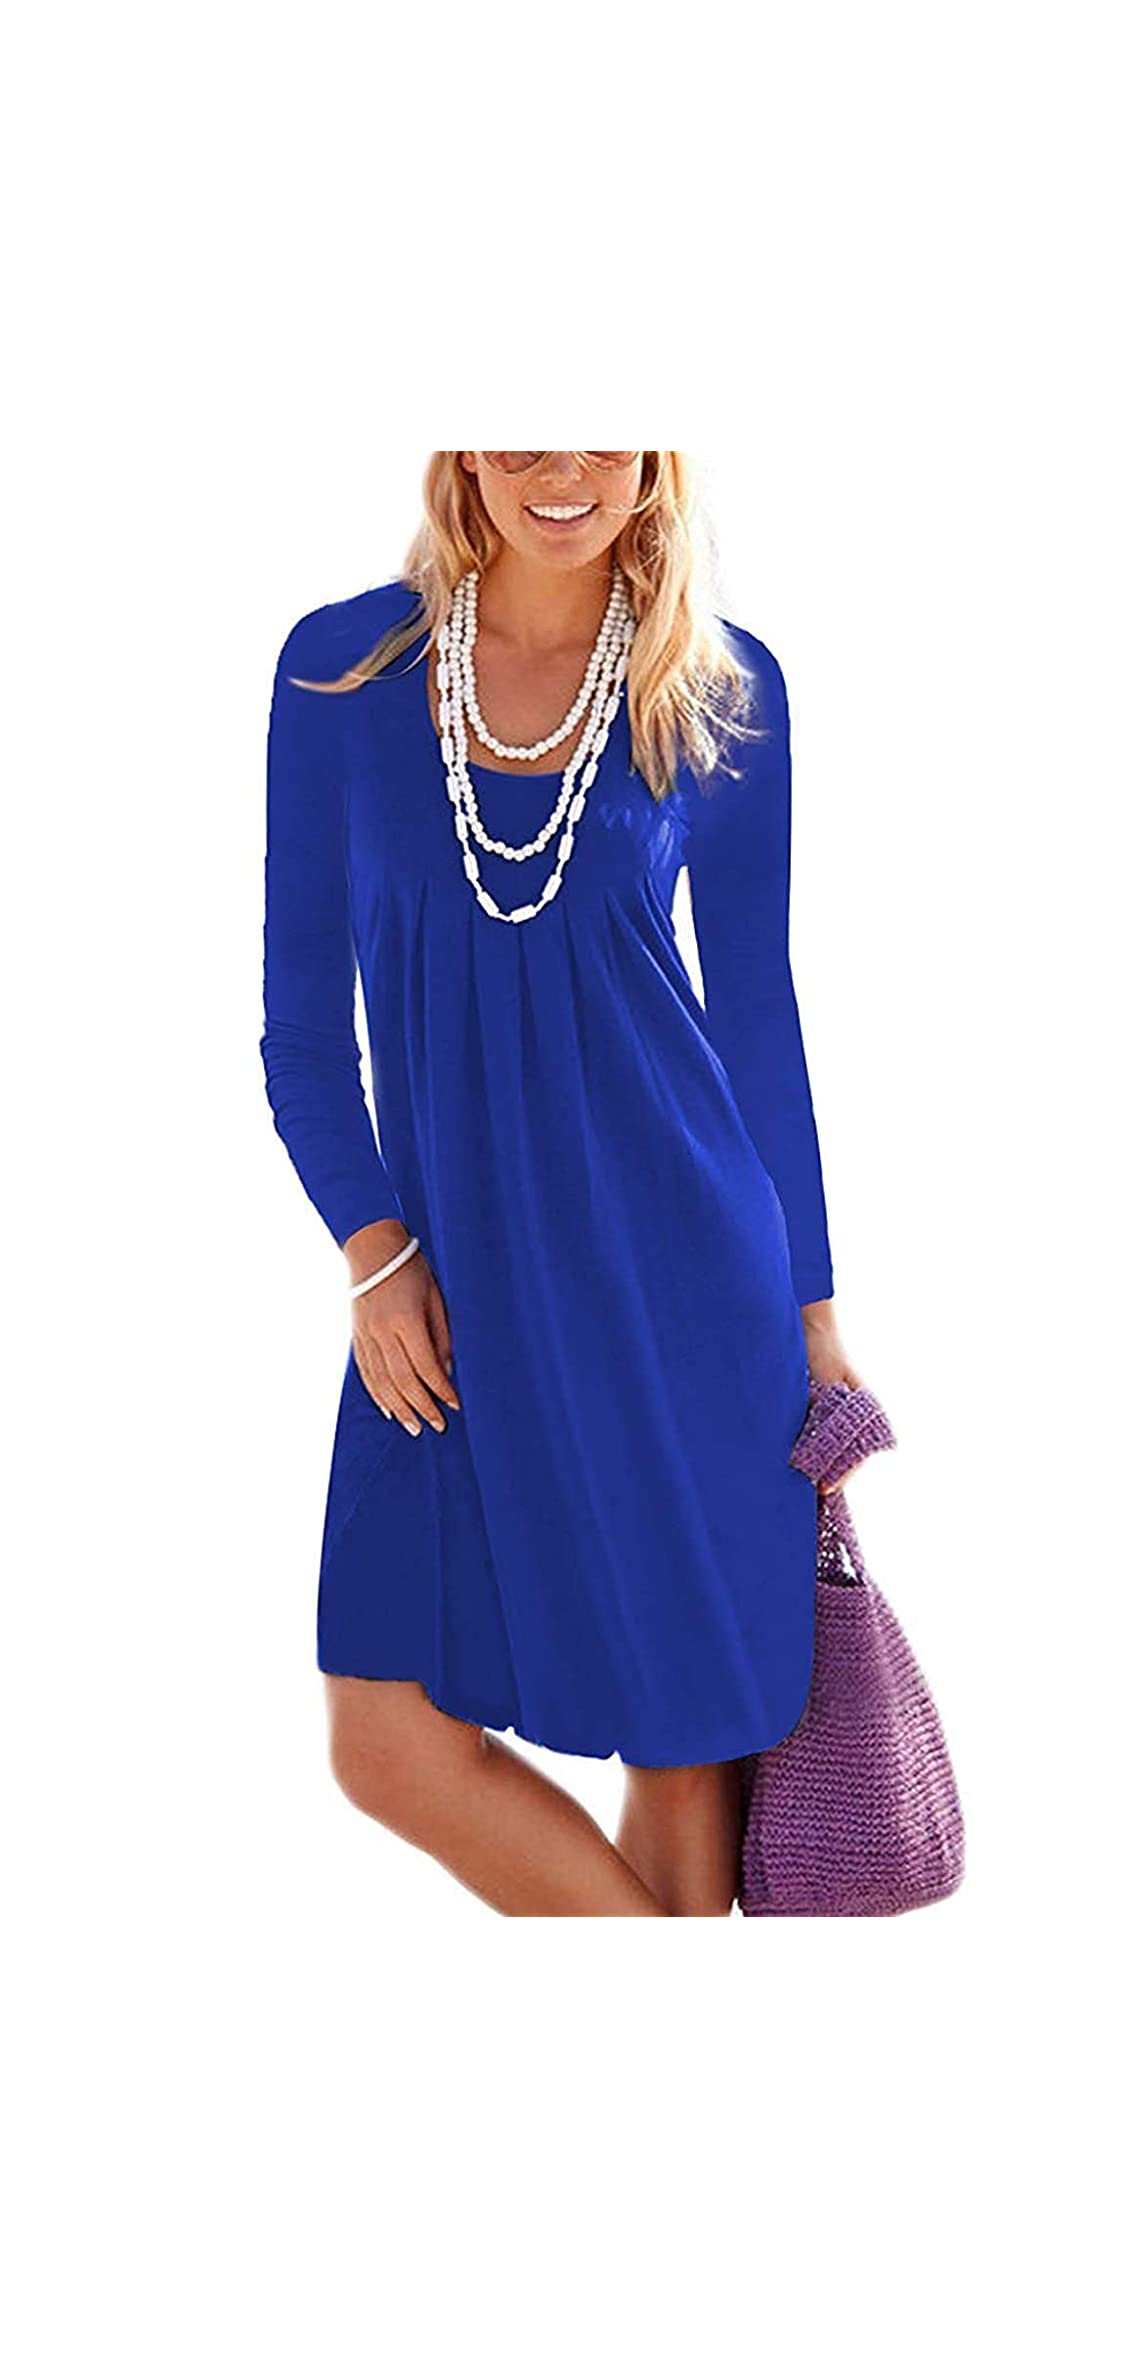 Women's Casual Long Sleeve Knee Length Pleated Dresses